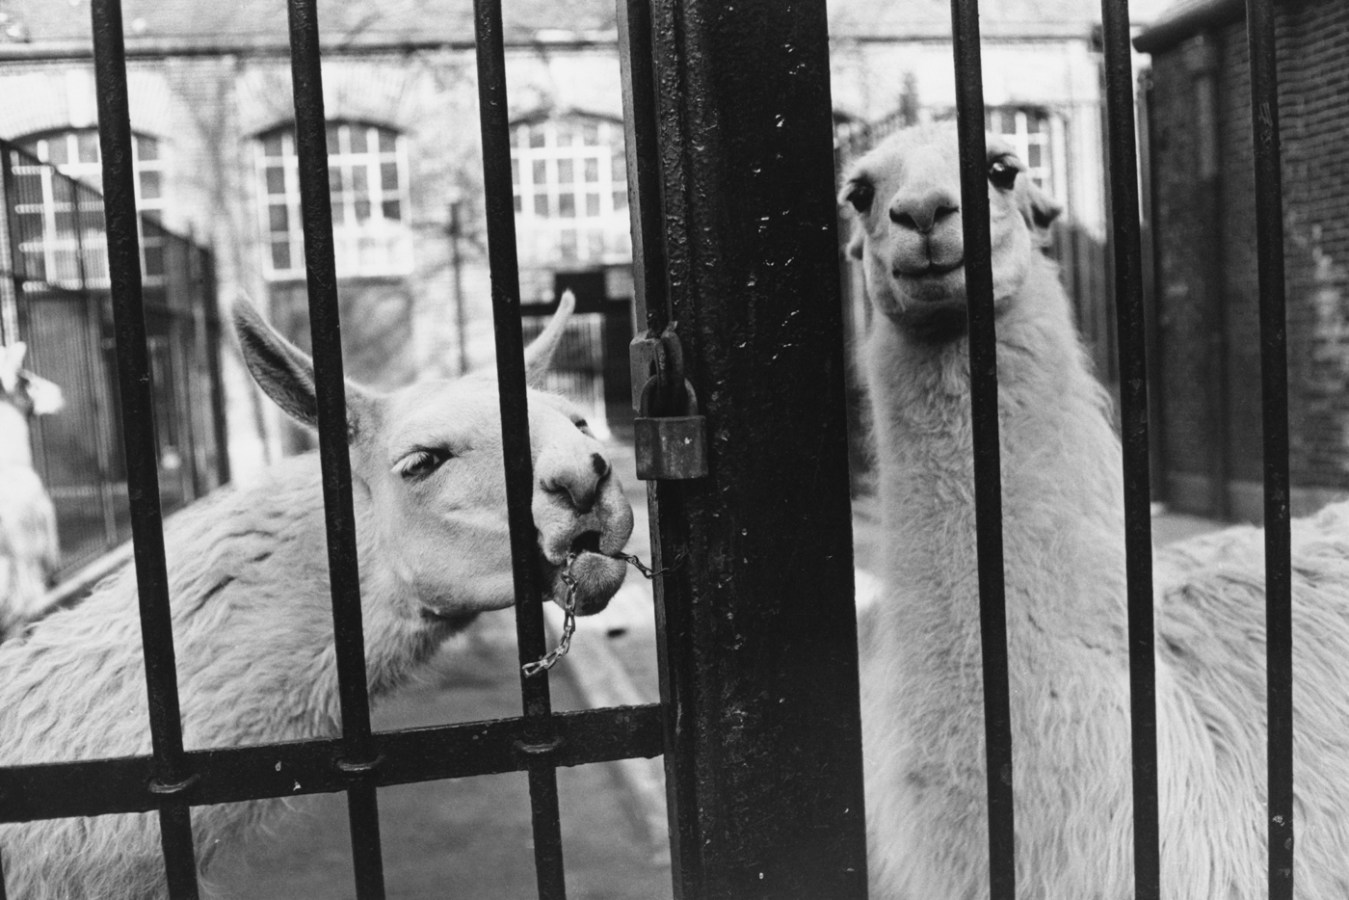 Black-and-white photograph of two llamas behind a locked iron gate